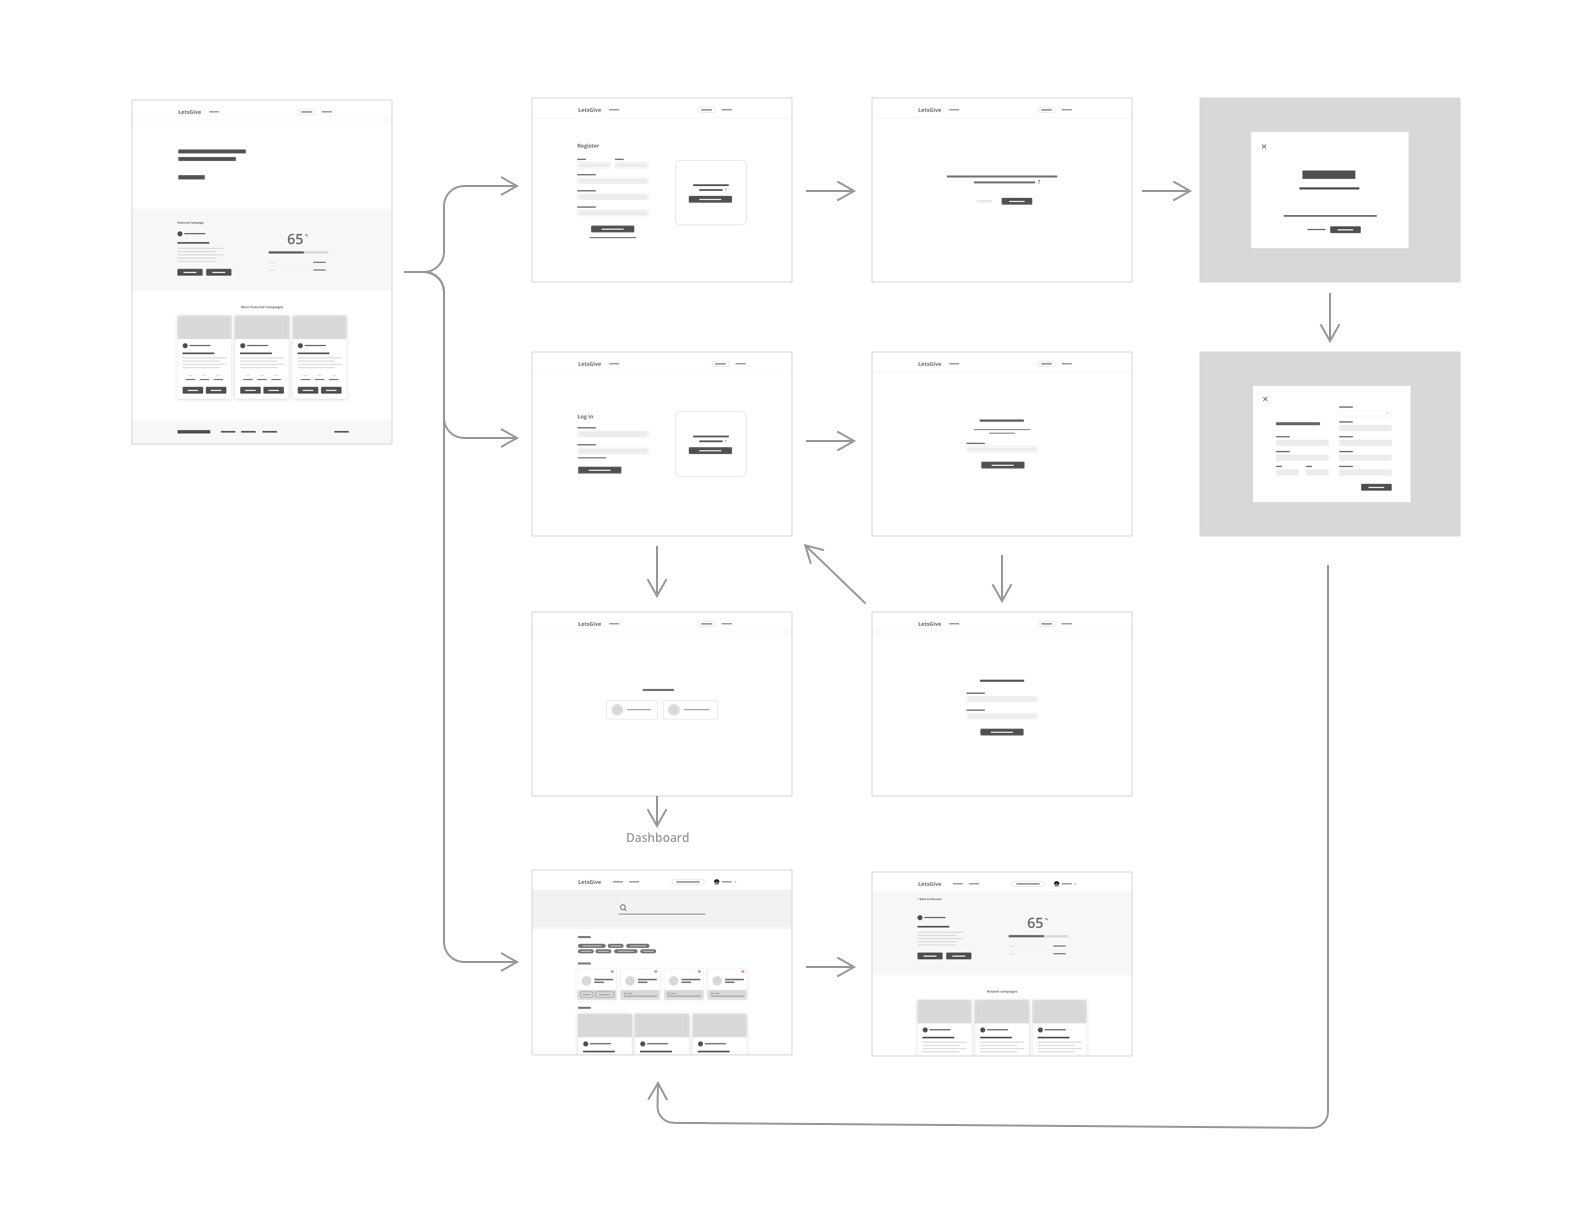 Wireframes being used to describe user flows